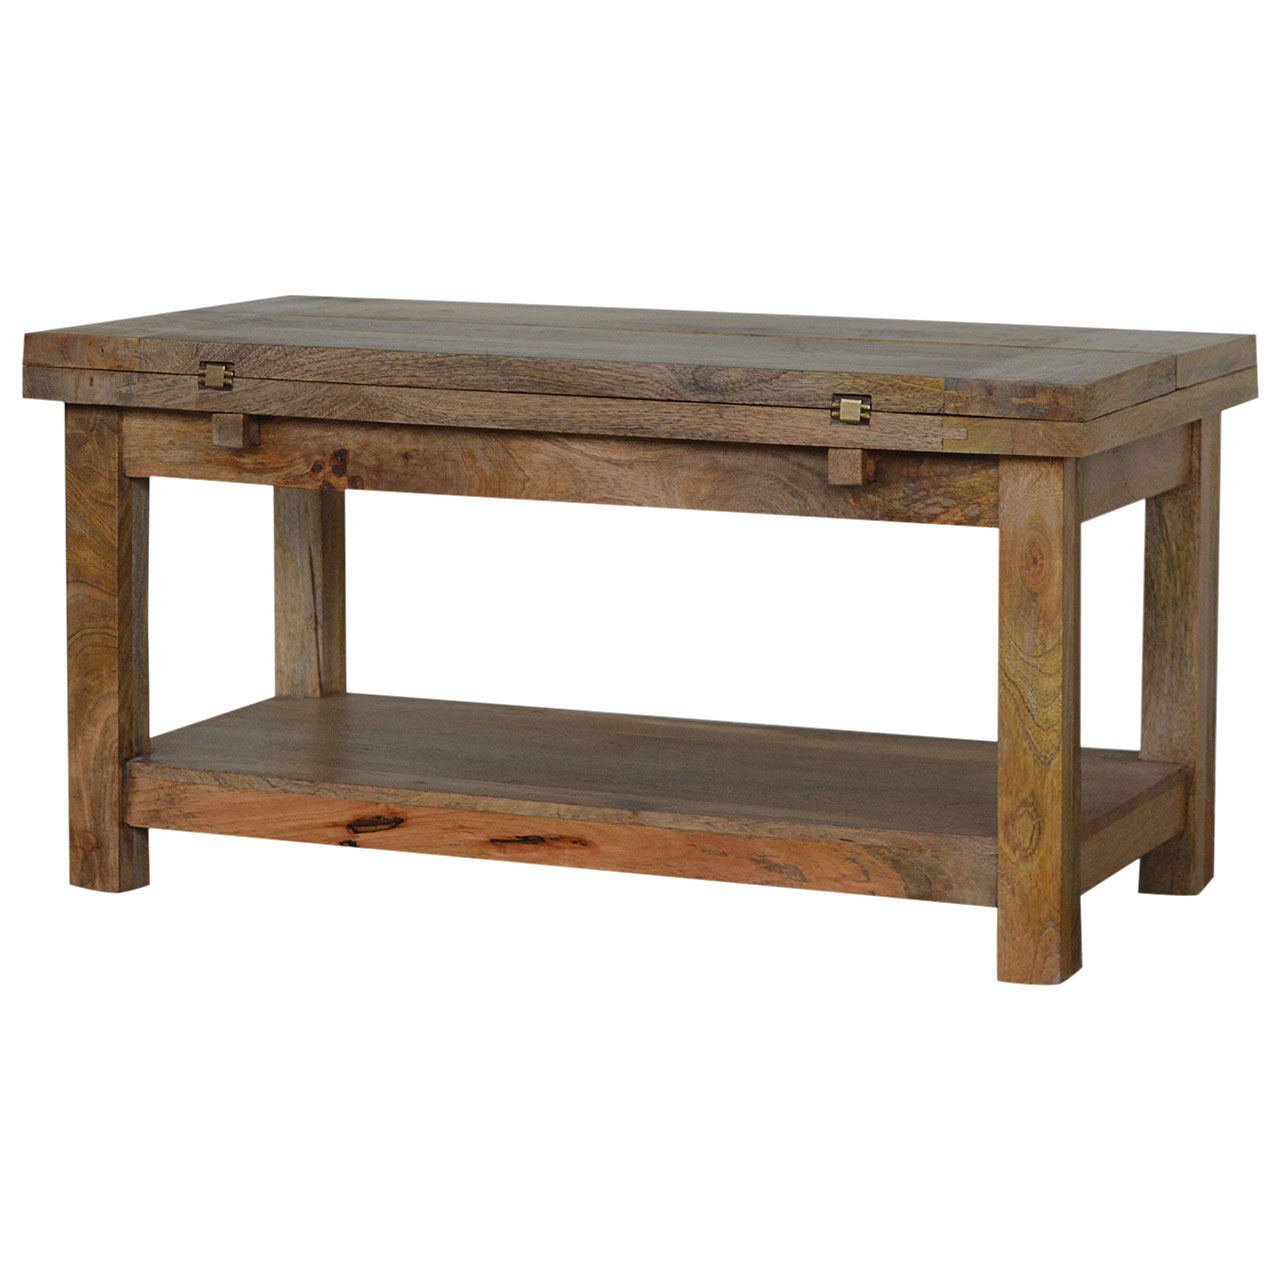 IN013 Trilogy Coffee Table